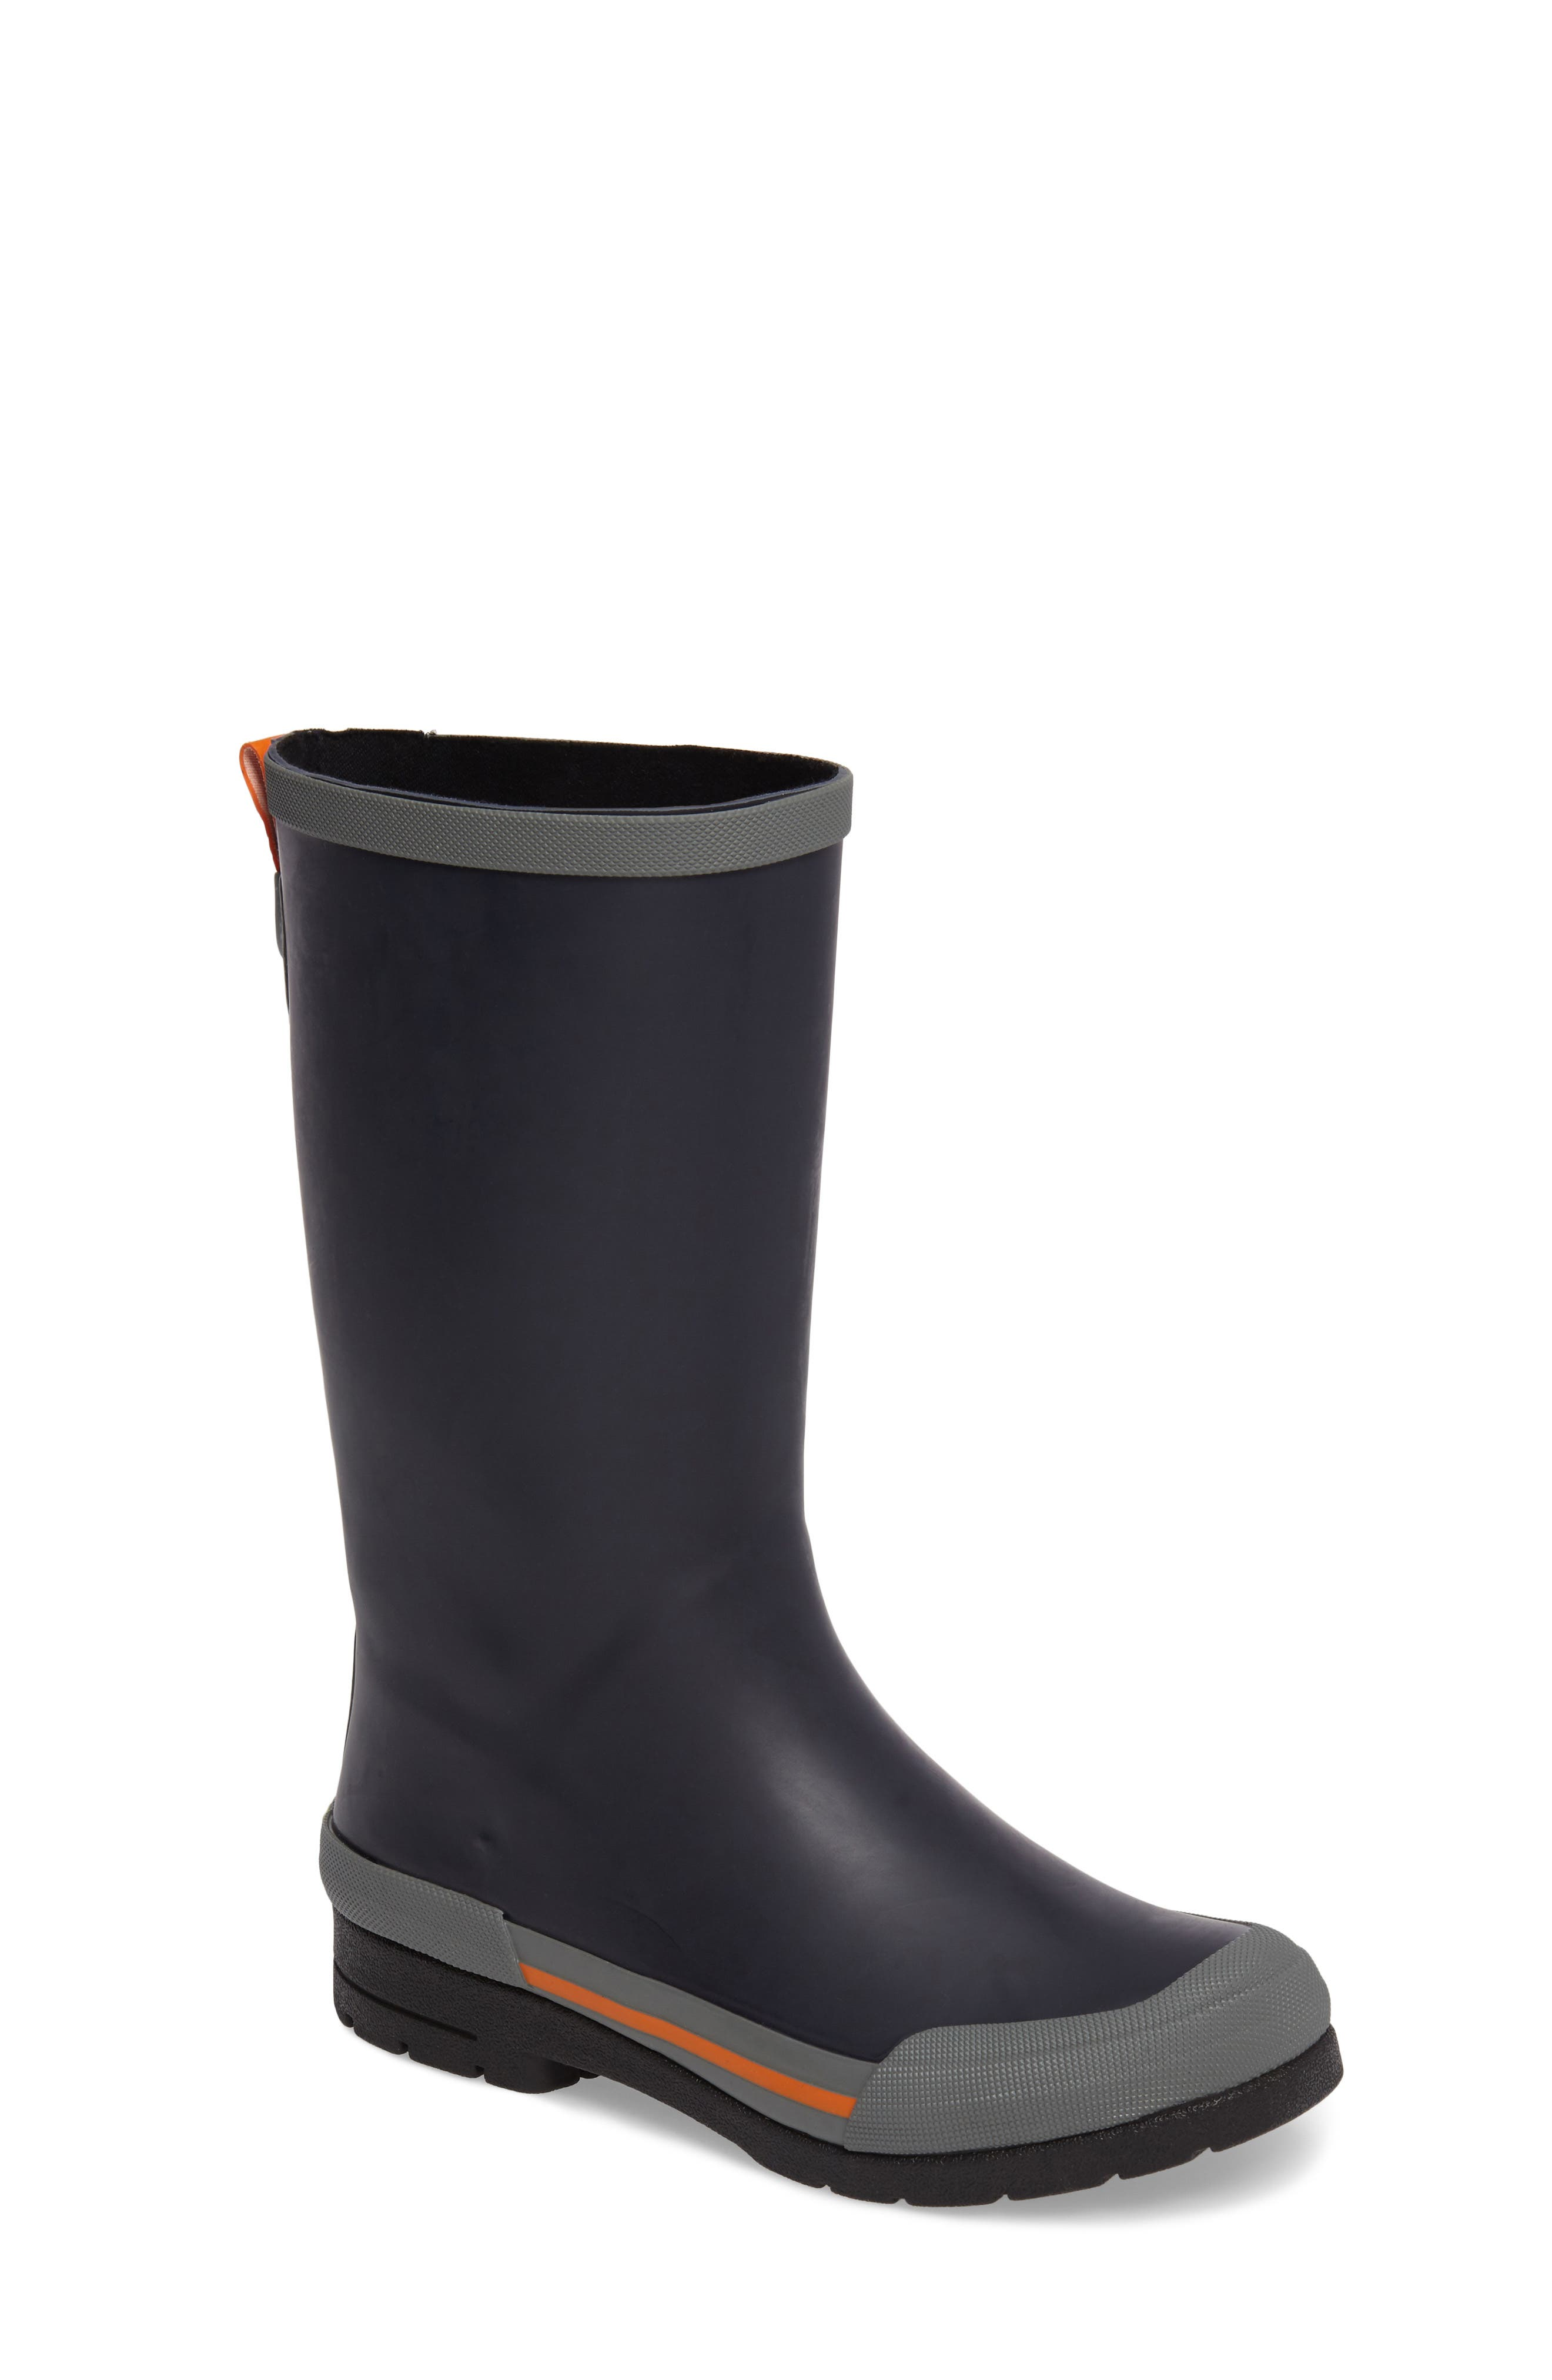 WESTERN CHIEF Classic EX Rain Boot